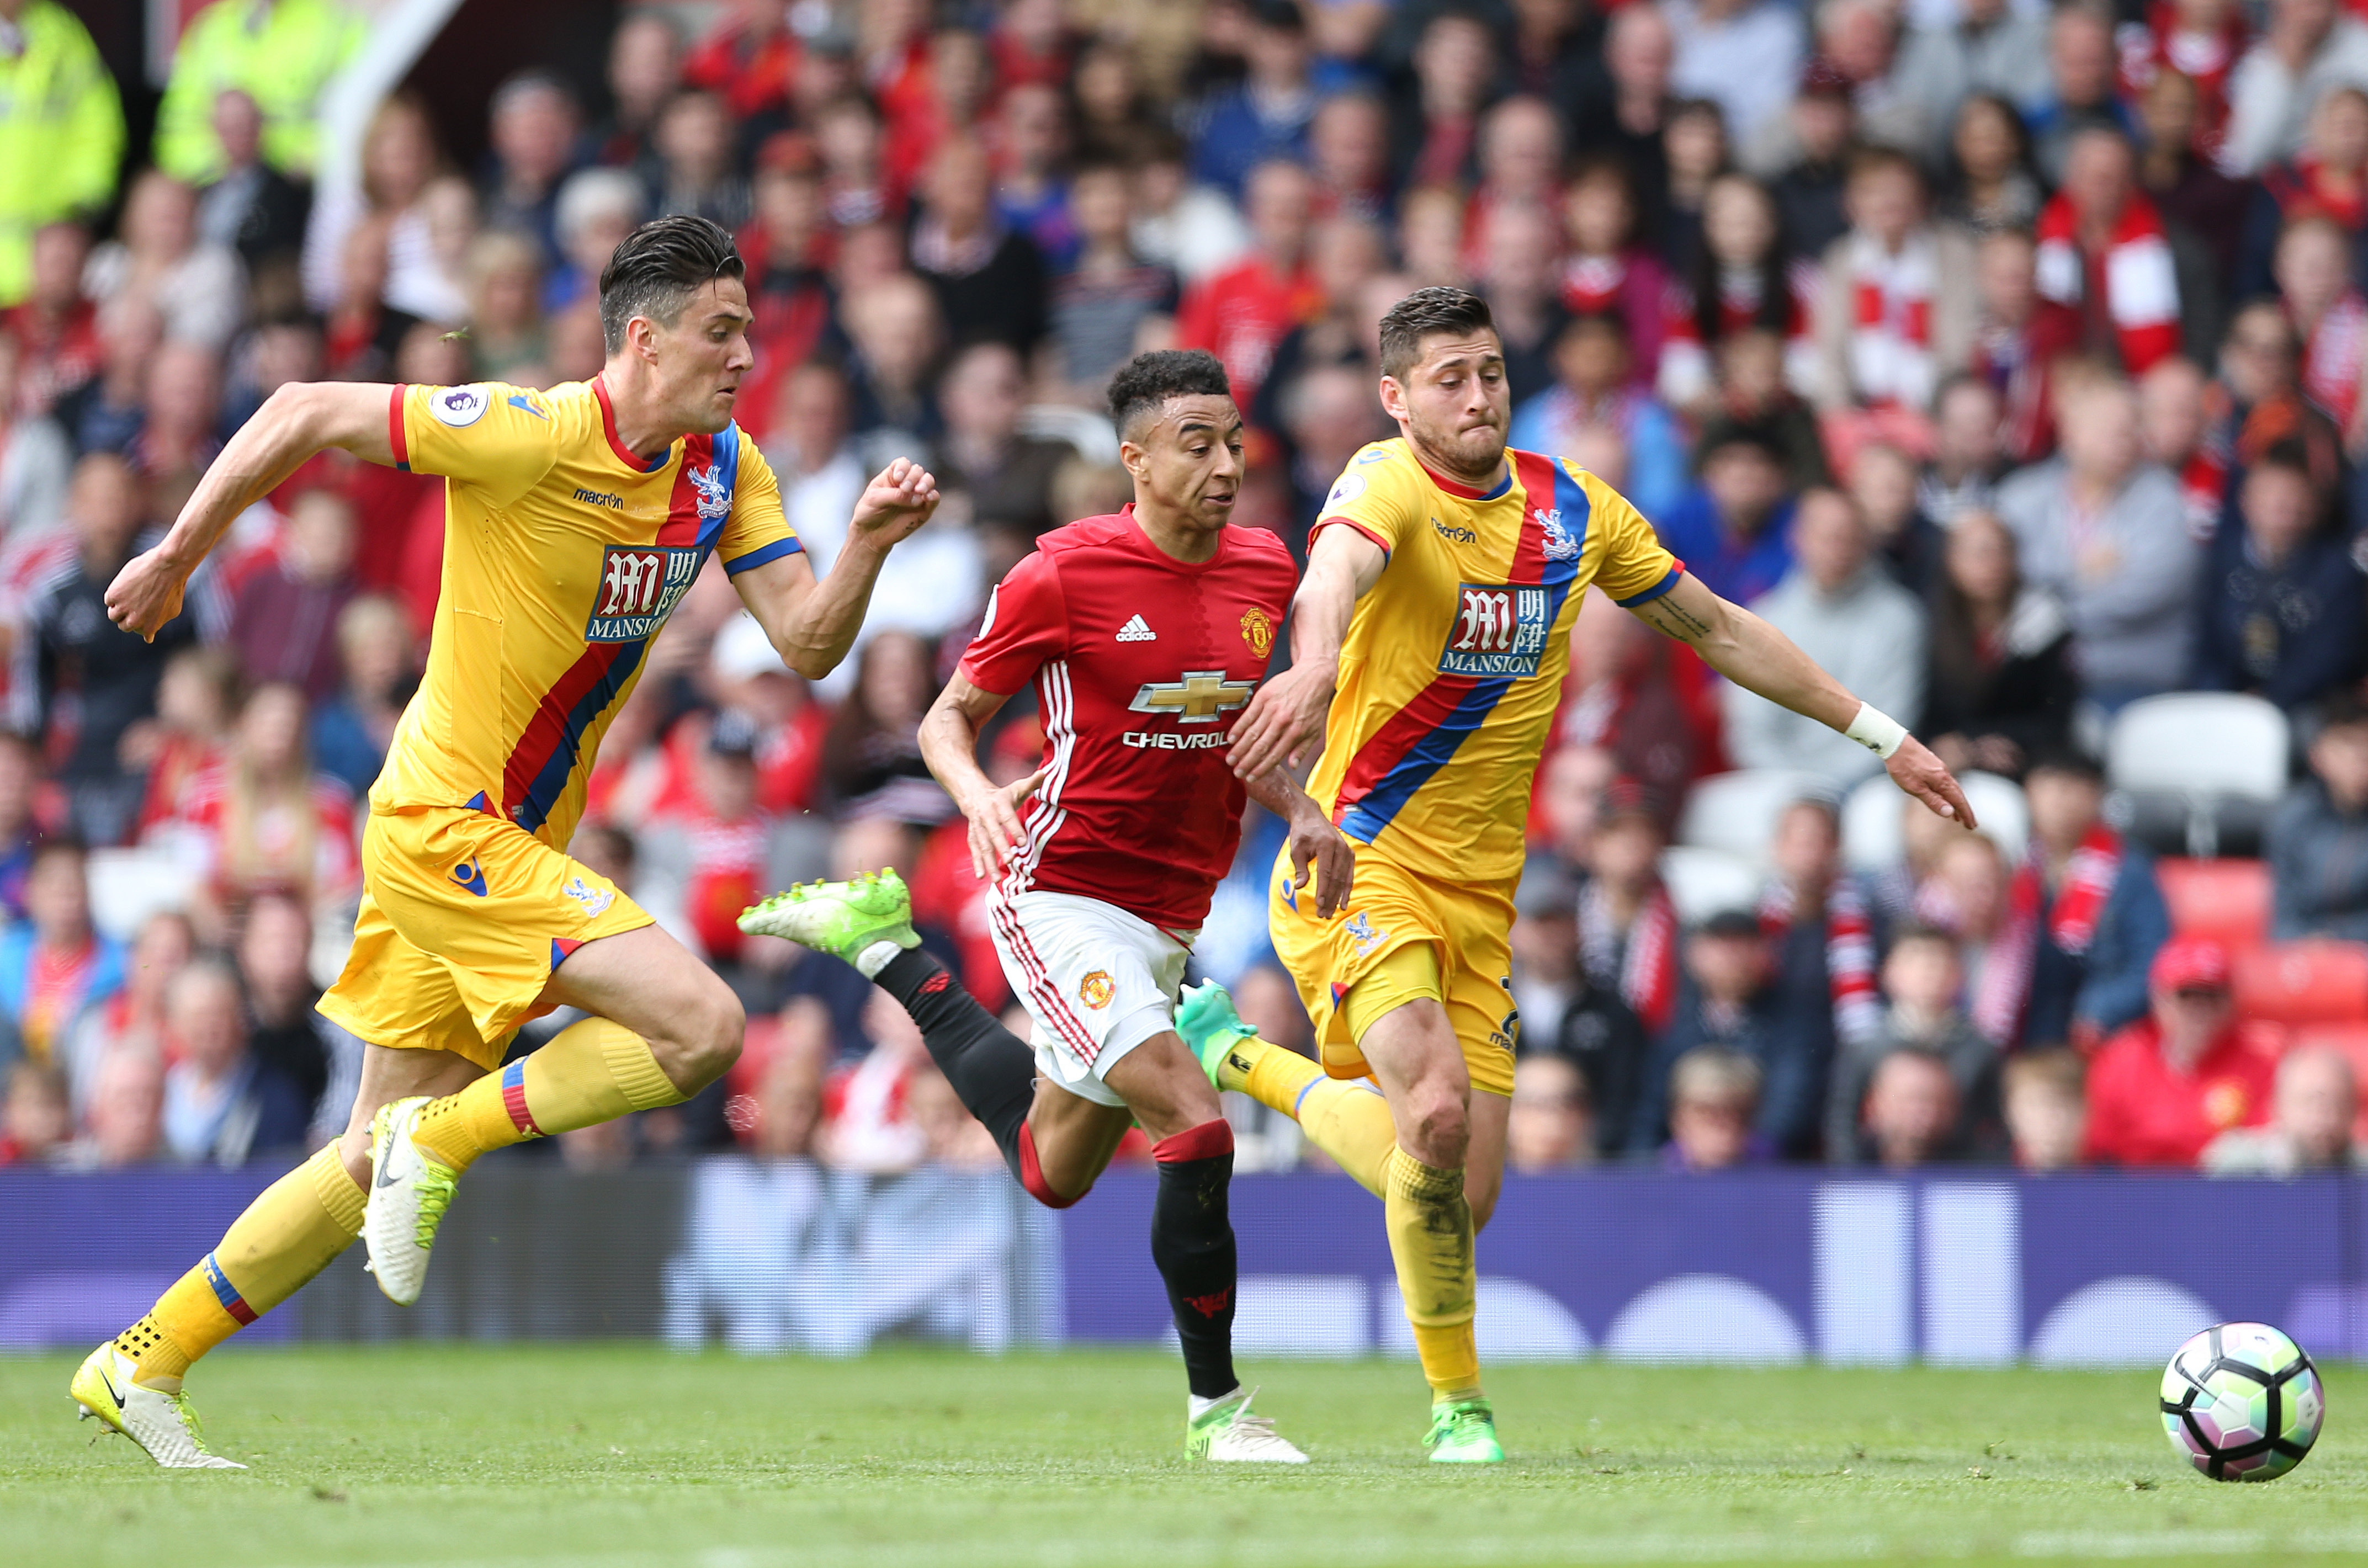 Manchester United v Crystal Palace in the Premier League